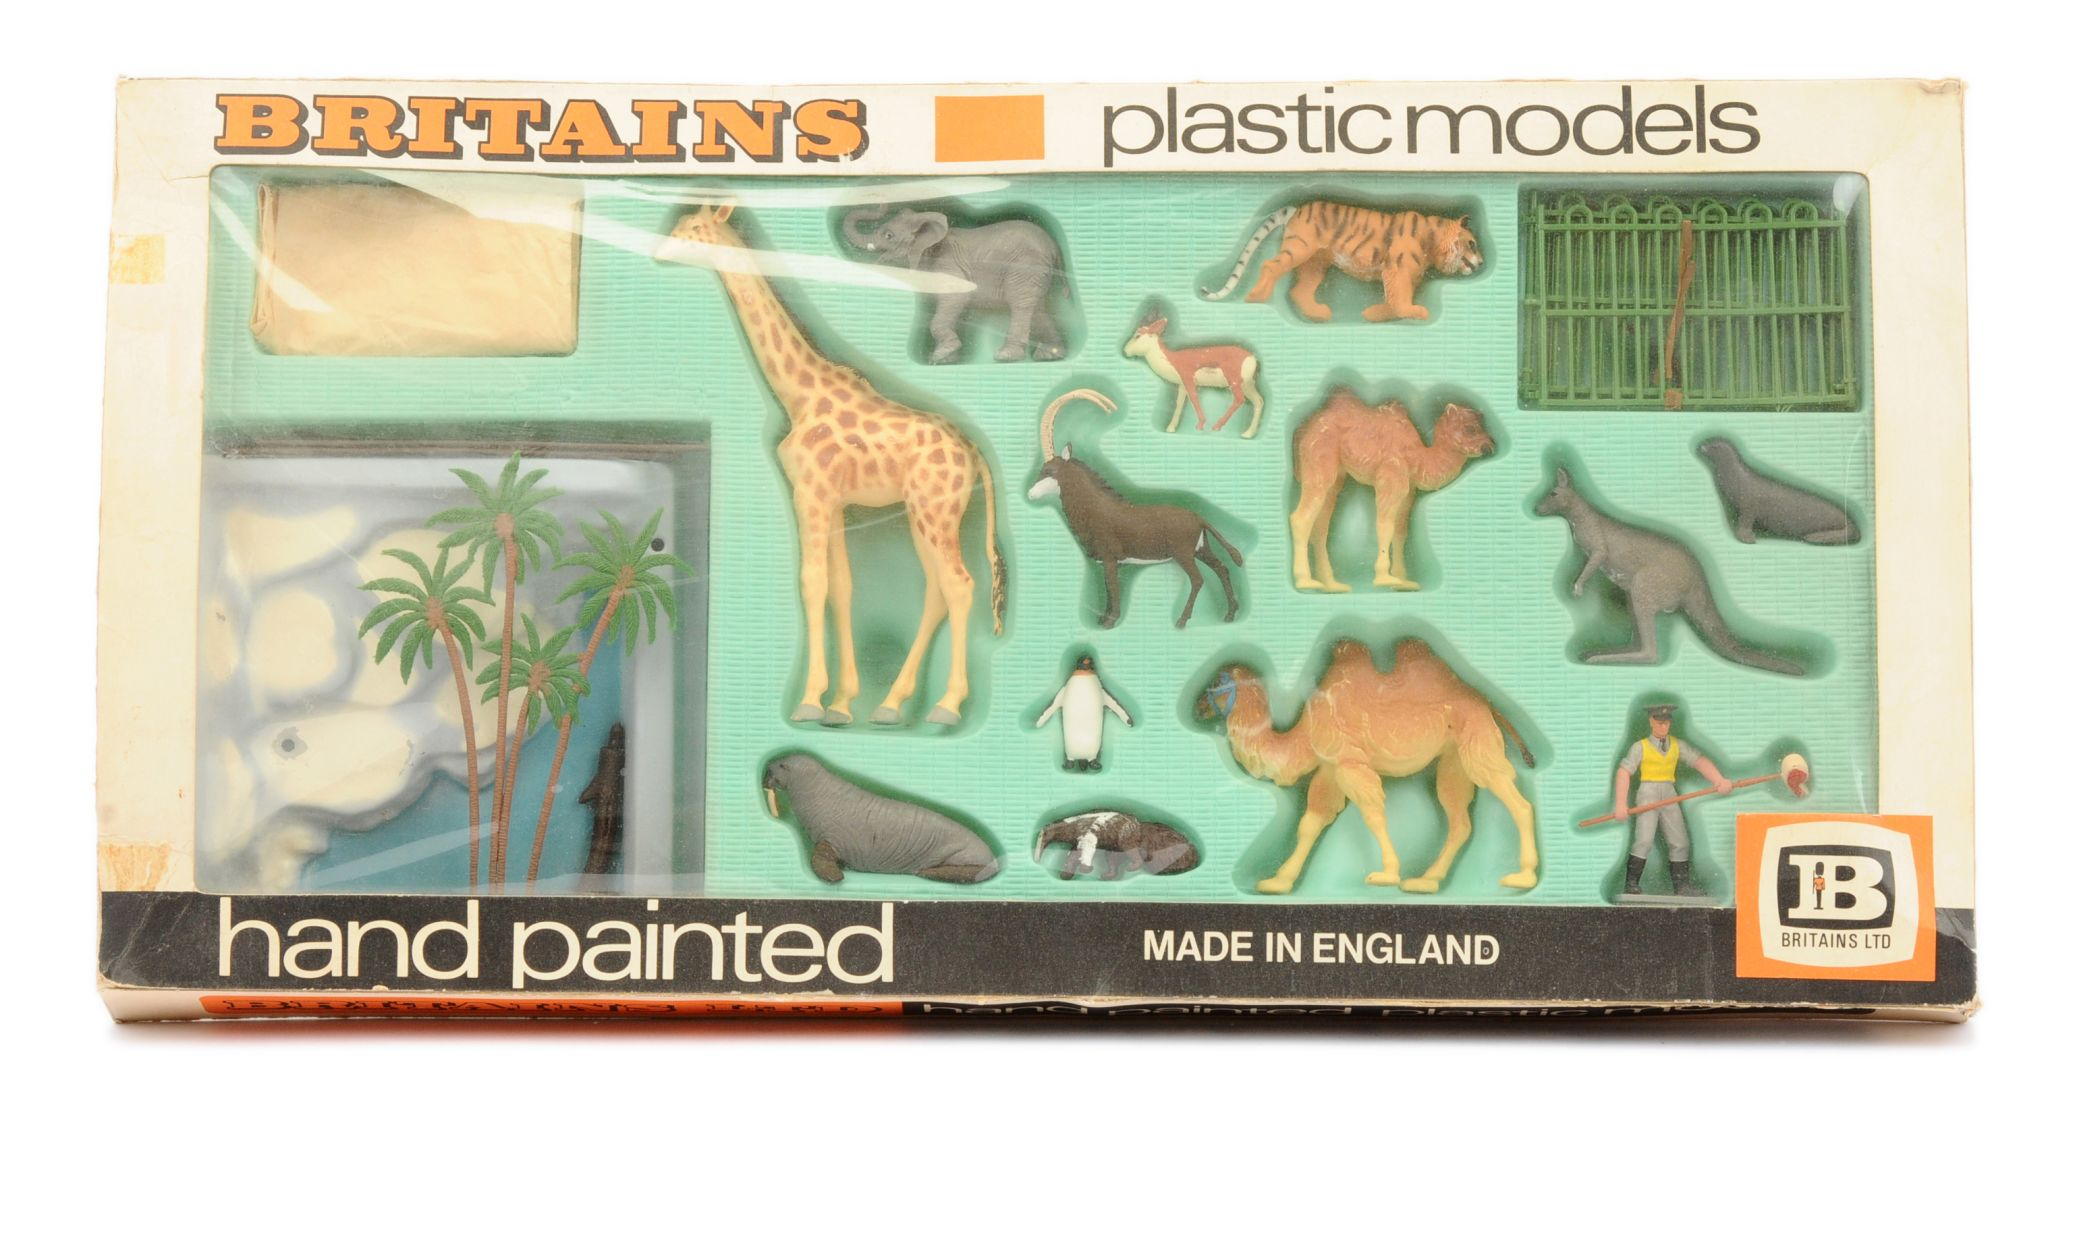 Britains (UK) 7323 Zoo Models Presentation Set 15th January 2020 Lot 661